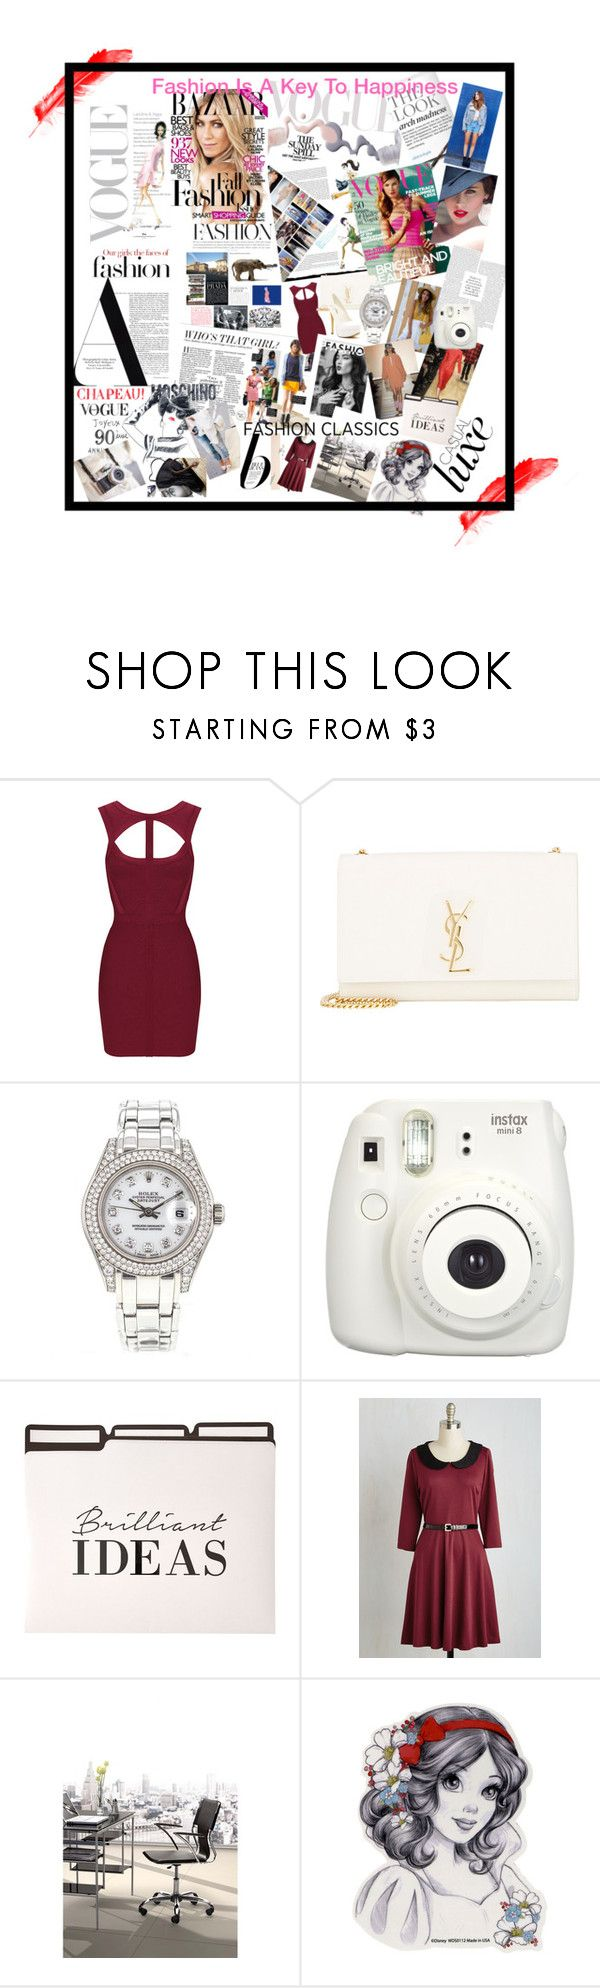 """Future👣"" by alixbudgen ❤ liked on Polyvore featuring Bottega Veneta, Moschino, Yves Saint Laurent, Michael Antonio, Rolex, Chanel, Emma Watson, KORS Michael Kors, Fujifilm and Nico"